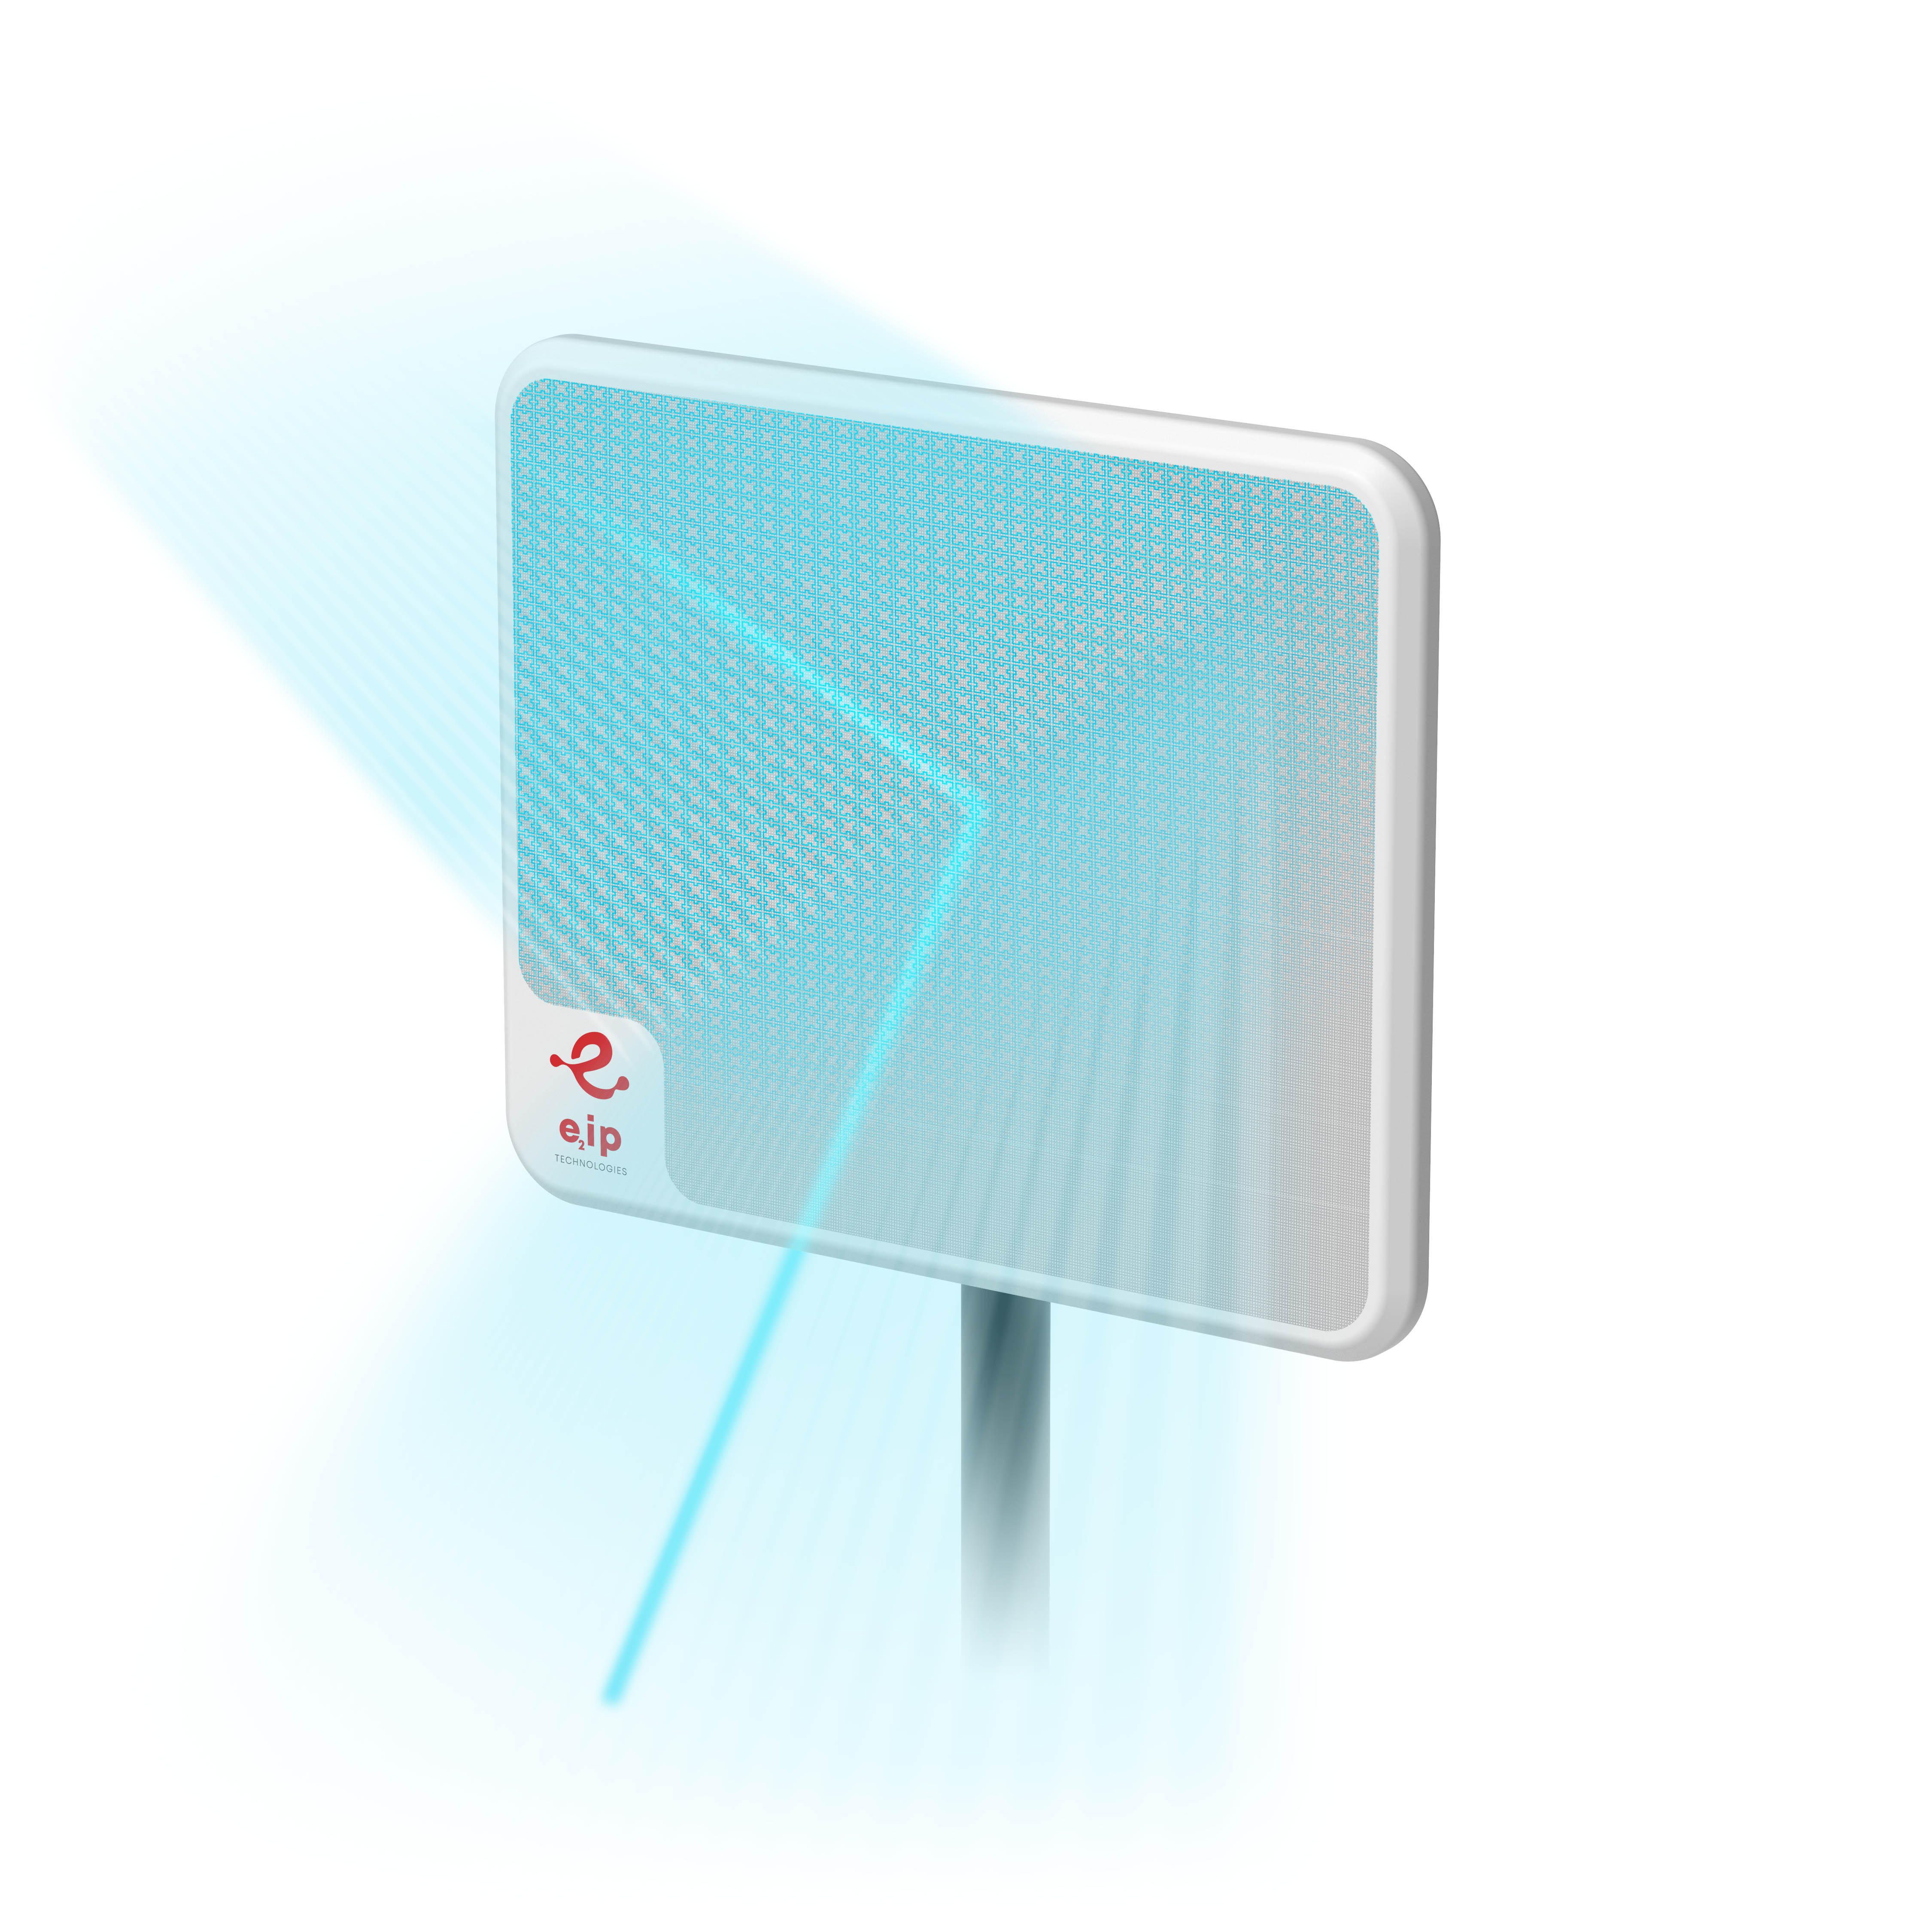 5G_SMART_SURFACE_PRODUCT